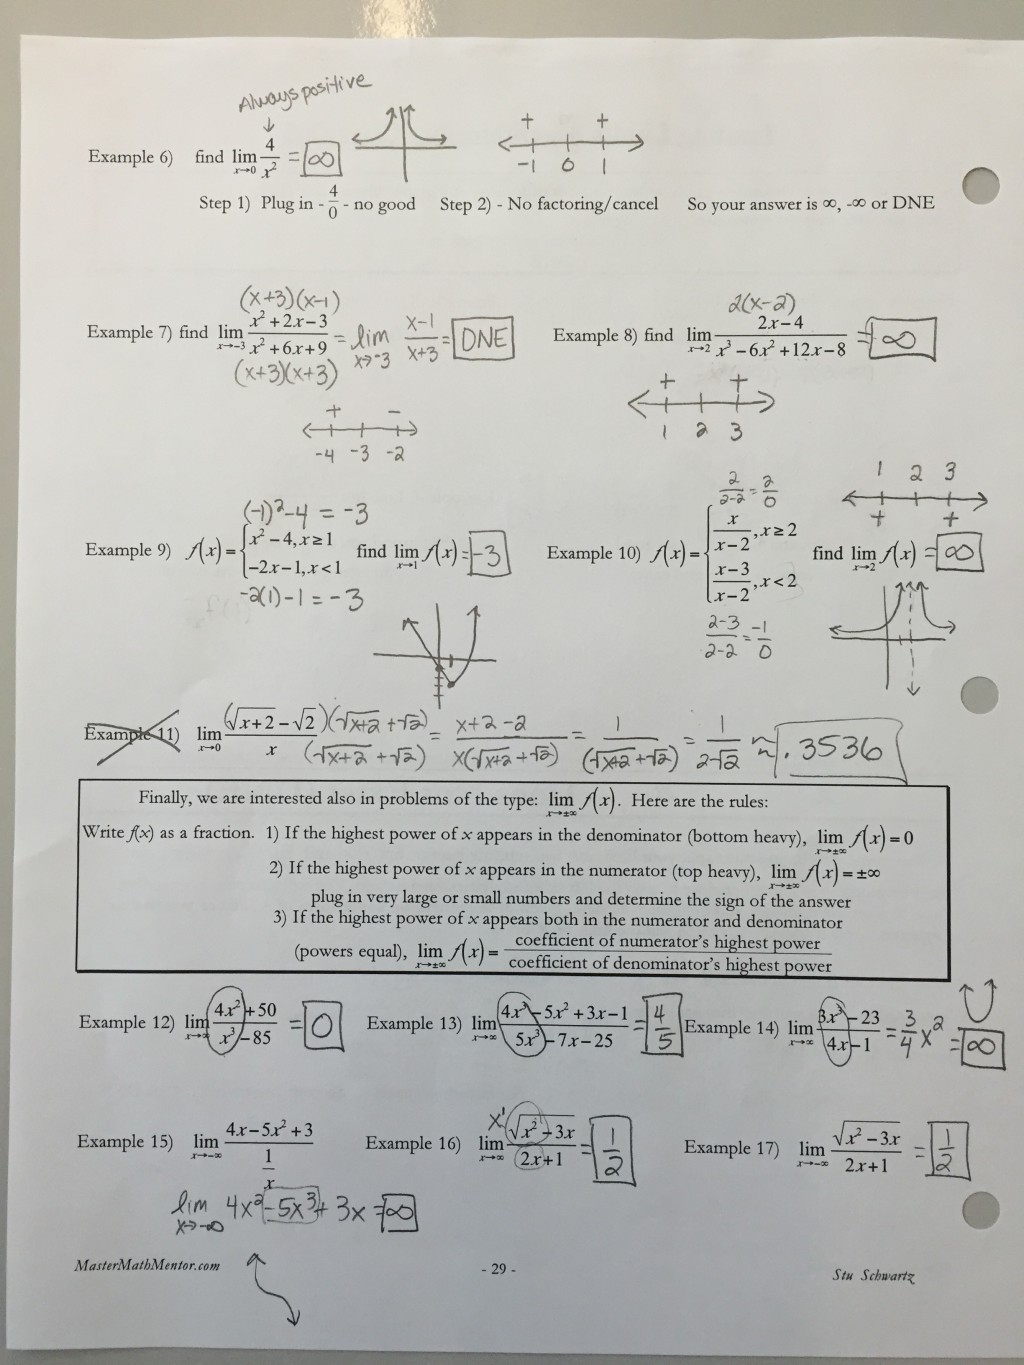 019 Essay Example Limits Algebraic Answers Page An On Sensational Criticism Lines 233 To 415 Part 3 Analysis Pdf Large